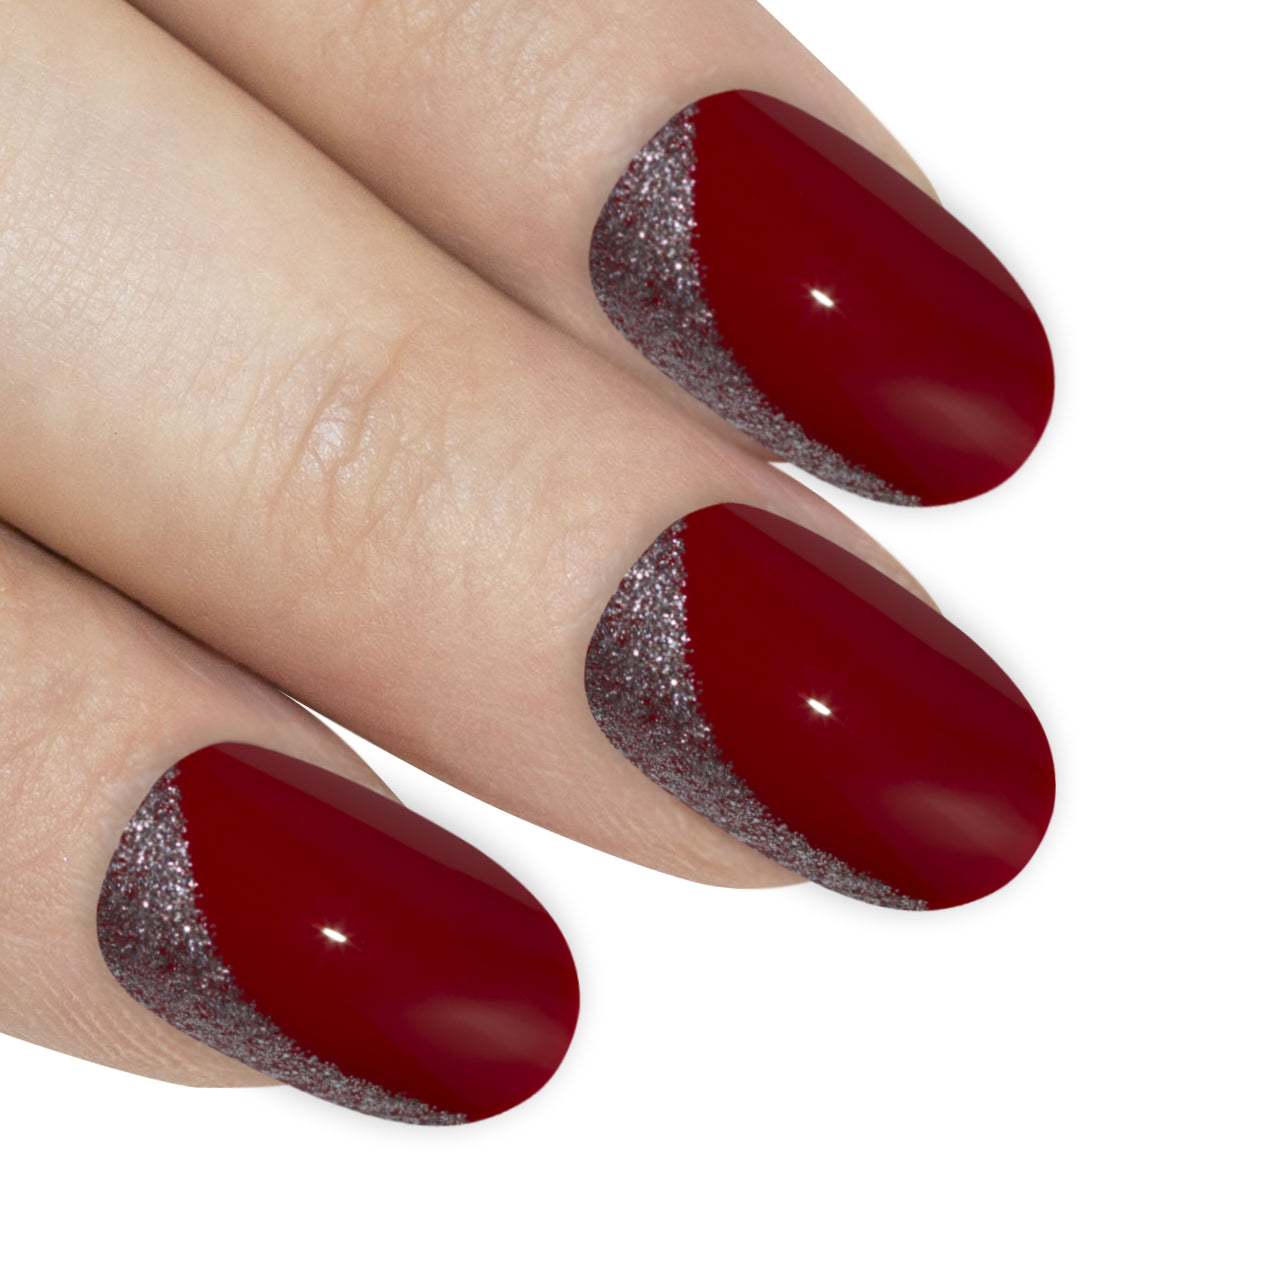 False Nails by Bling Art Red Glitter Oval Medium Fake Acrylic Nail Tips with Glue, Nail Care by Bling Art